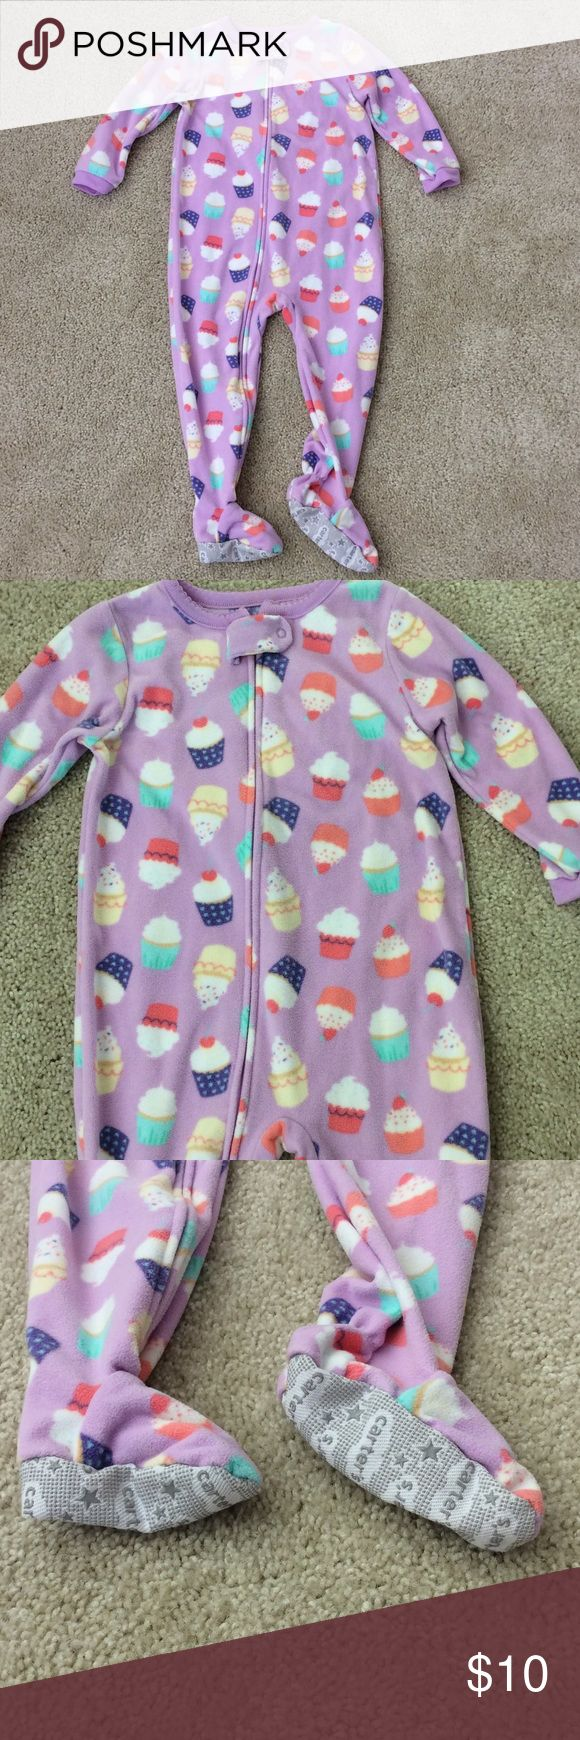 Carter's Footed PJs Carter's Footed PJs. Super cute cupcakes. Zips up the front. Washed but never worn. My daughter did not like the 'feet'. Size 24M. 100% polyester. NWOT. Carter's Pajamas